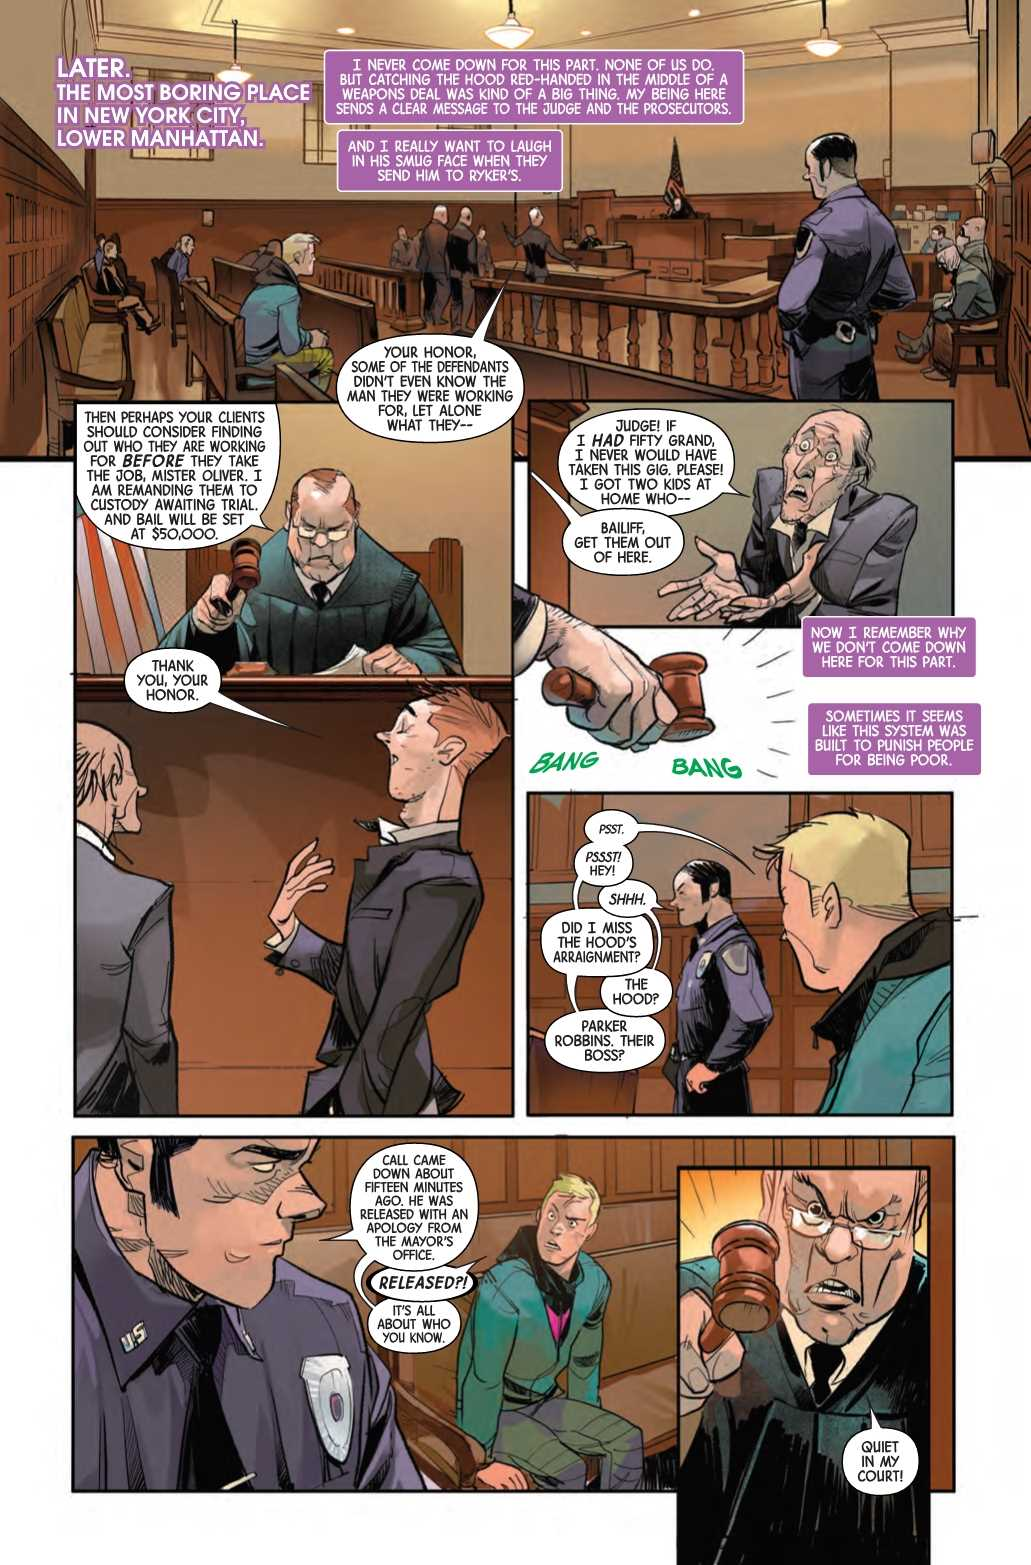 Hawkeye: Freefall #1 Page 4, Marvel Comics, 2020.